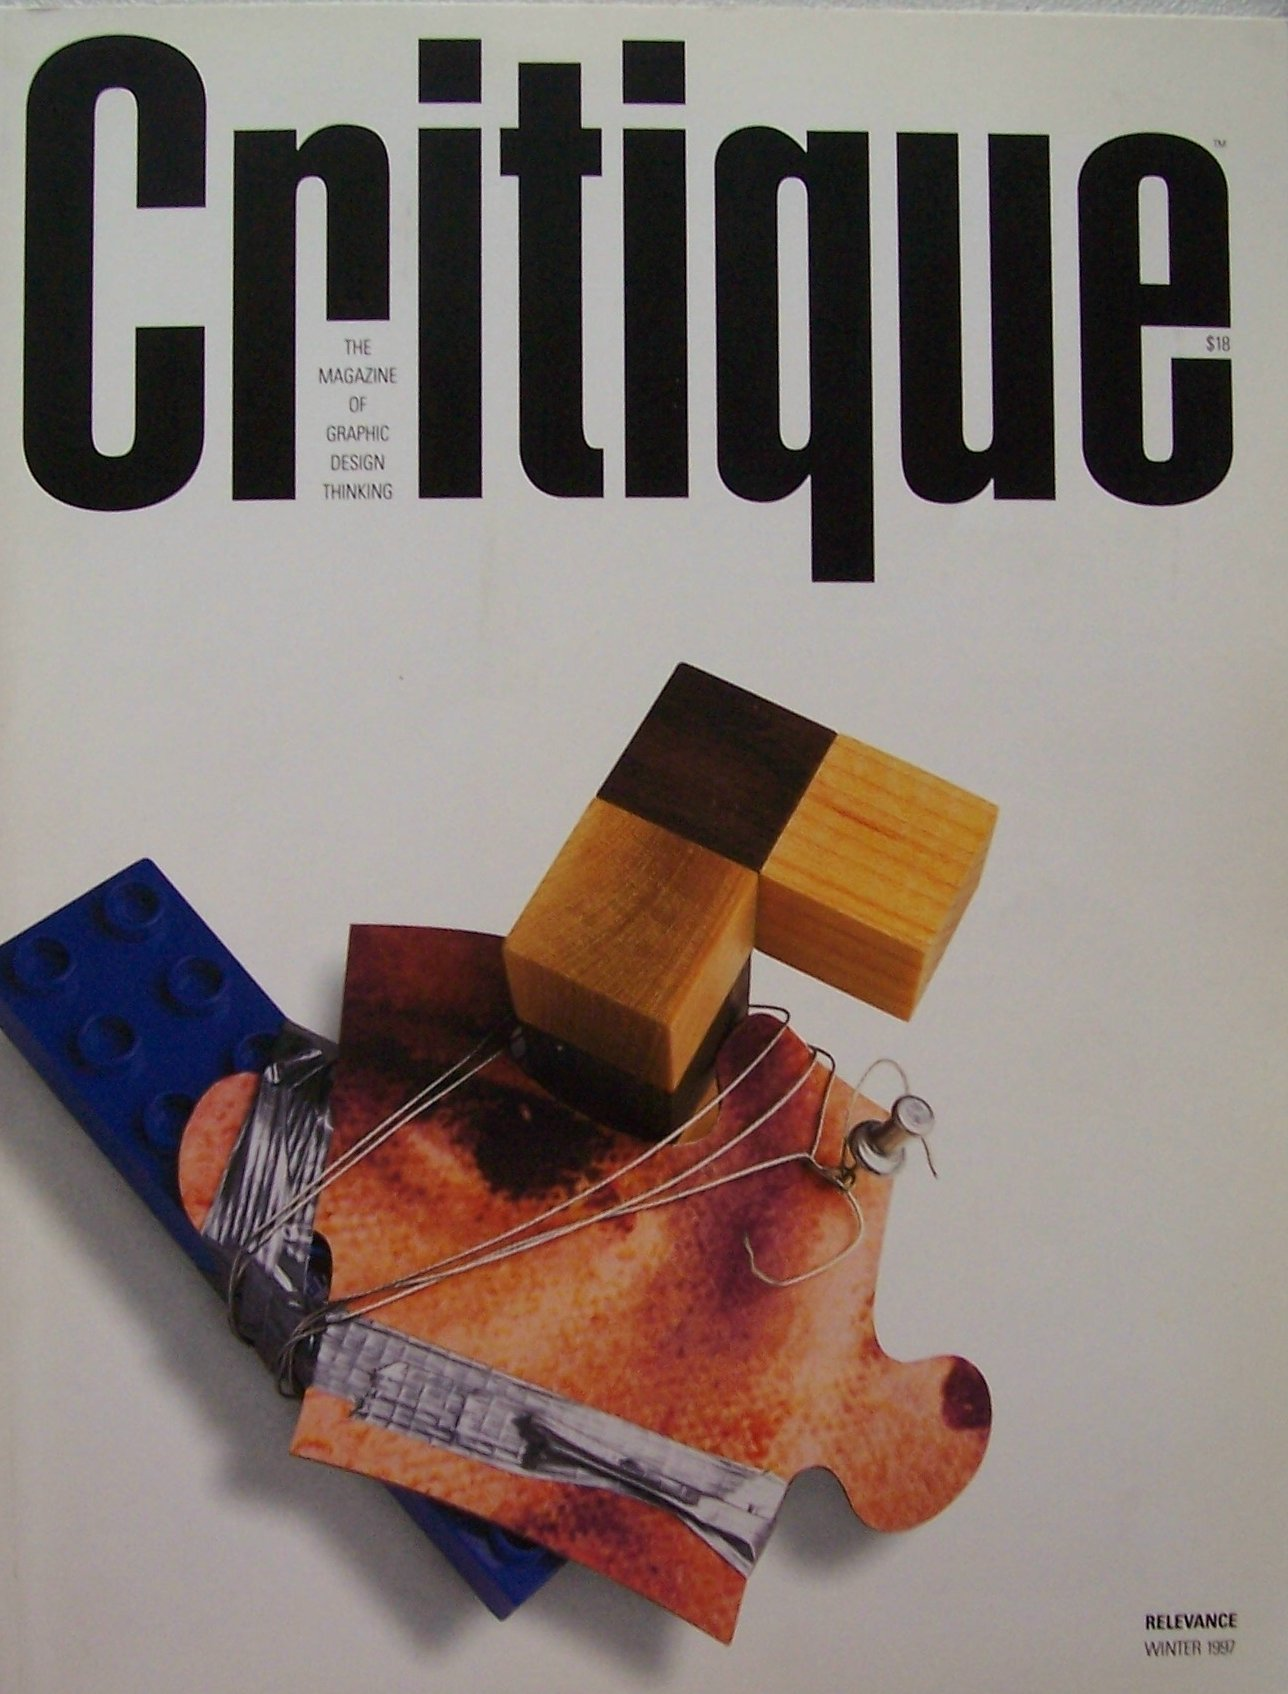 critique relevance number 3 winter 1997 the magazine of graphic design thinking number 16